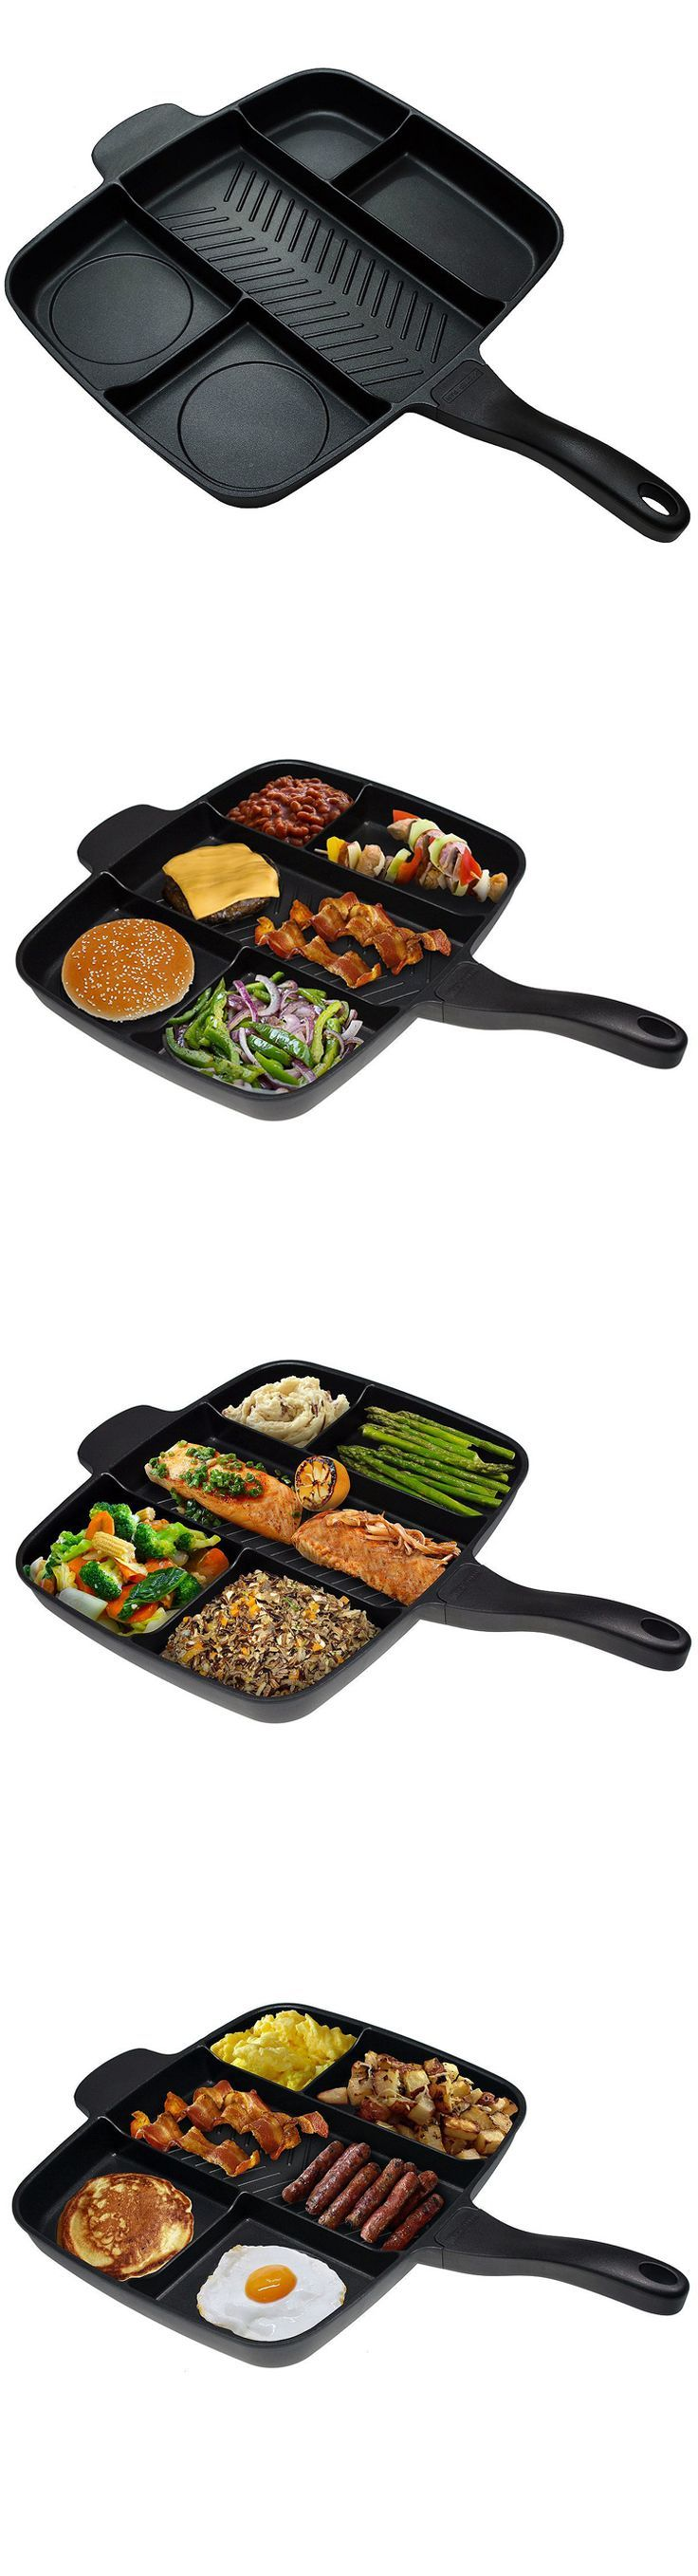 Photo of Master Pan Non-Stick Divided Grill/Fry/Oven Meal Skillet – Gwyl.io